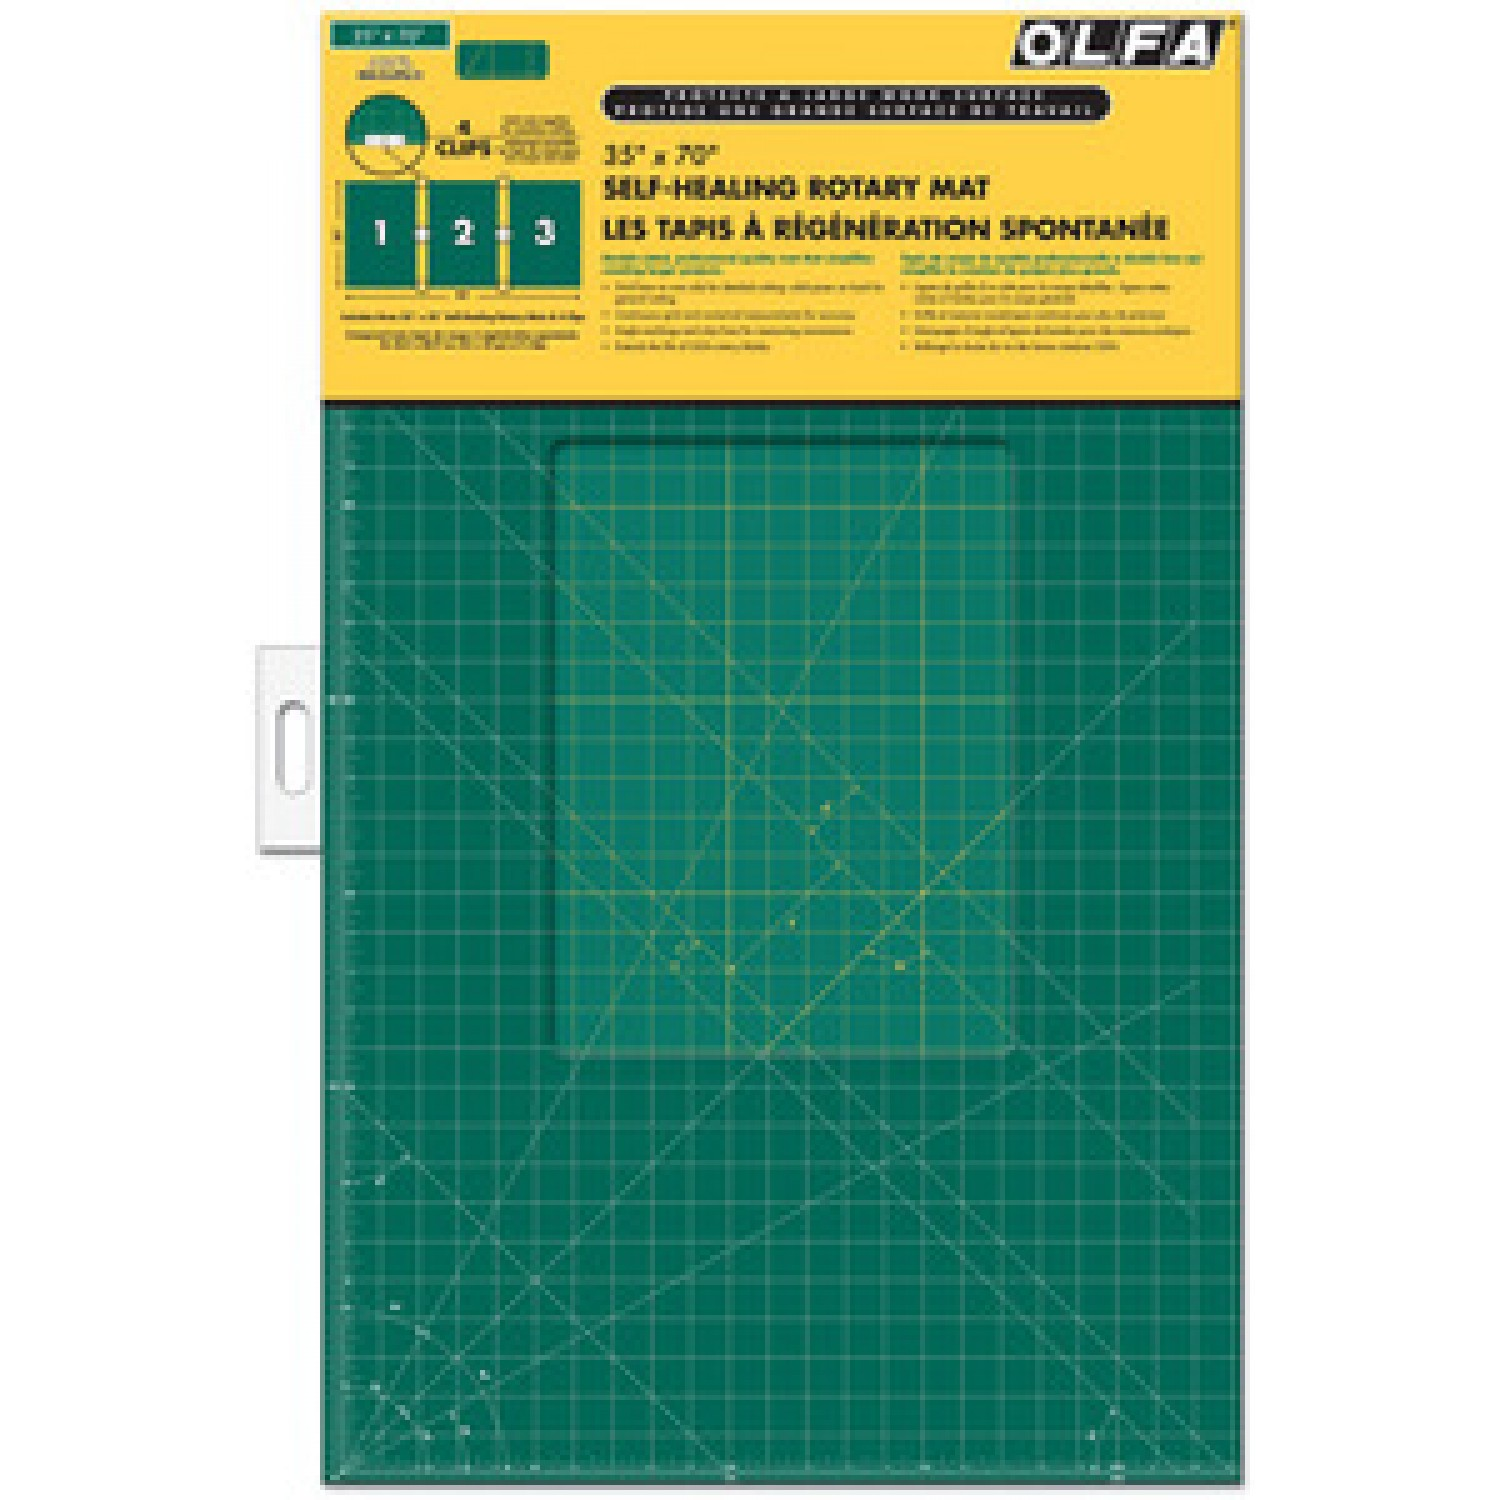 "Olfa RM-CLIPS-3 Continuous Grid Cutting Mat Set 35"" x 70"" Package"